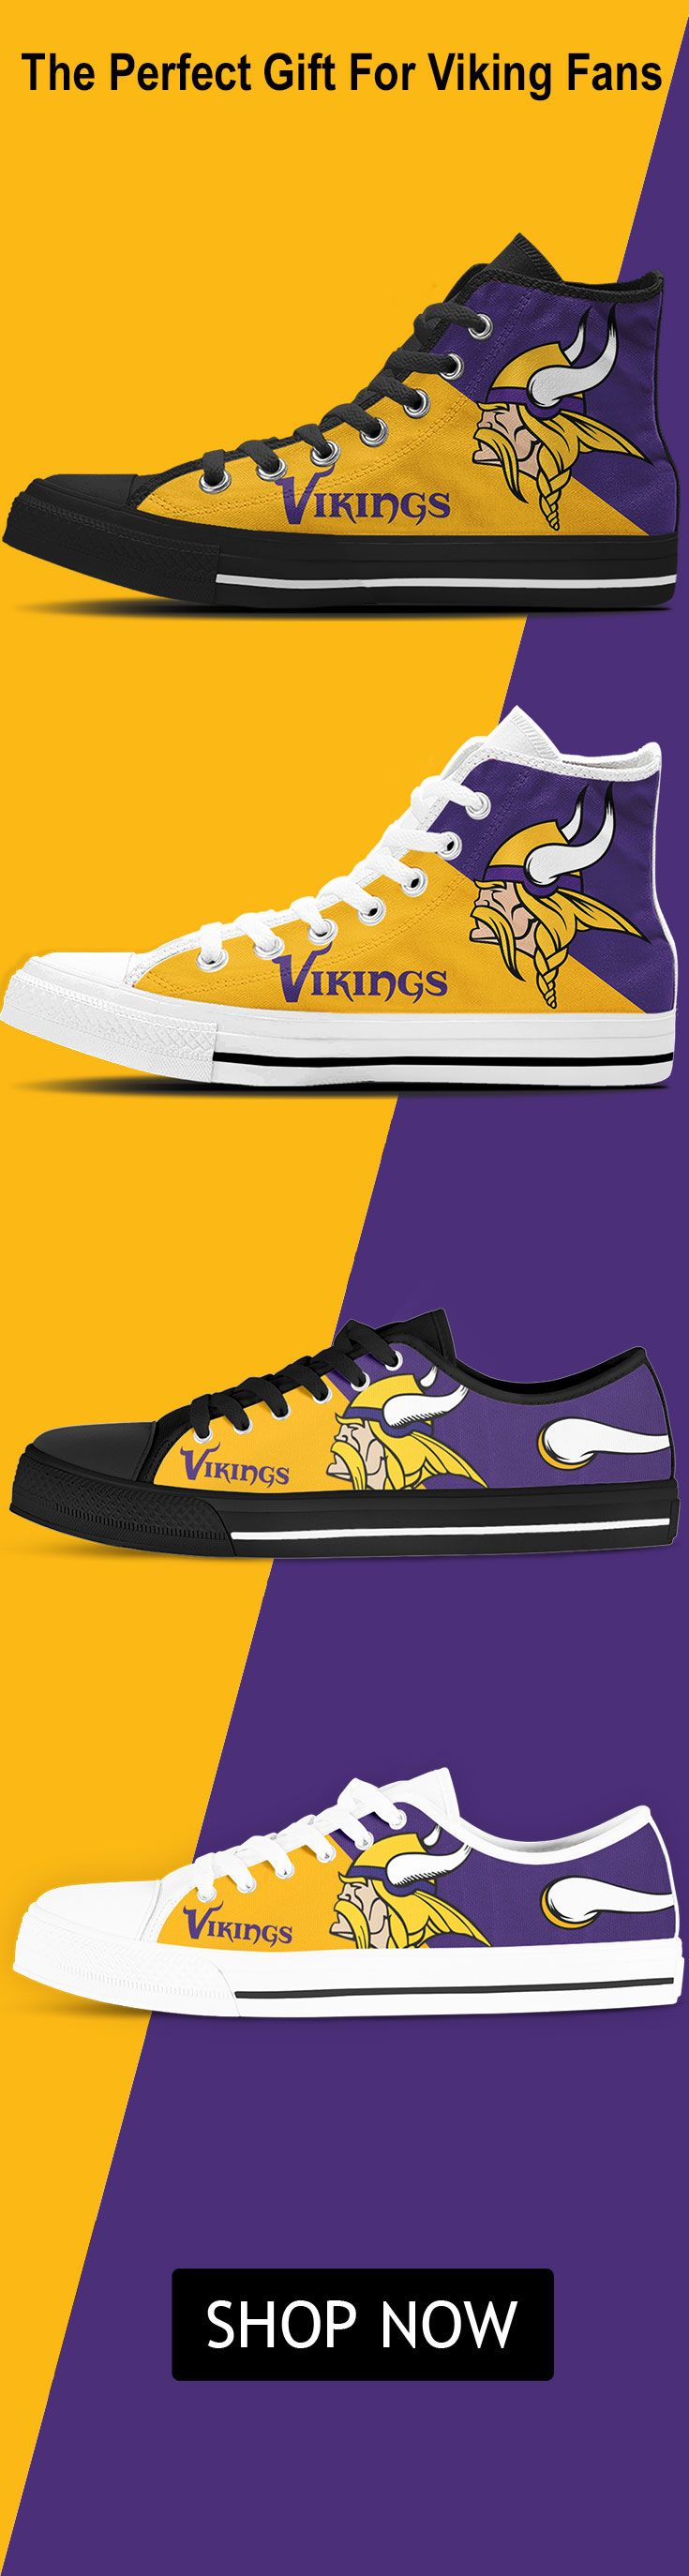 Minnesota Vikings Fan Shoes! These sneakers are what every Vikings Fan wants to get this Christmas!